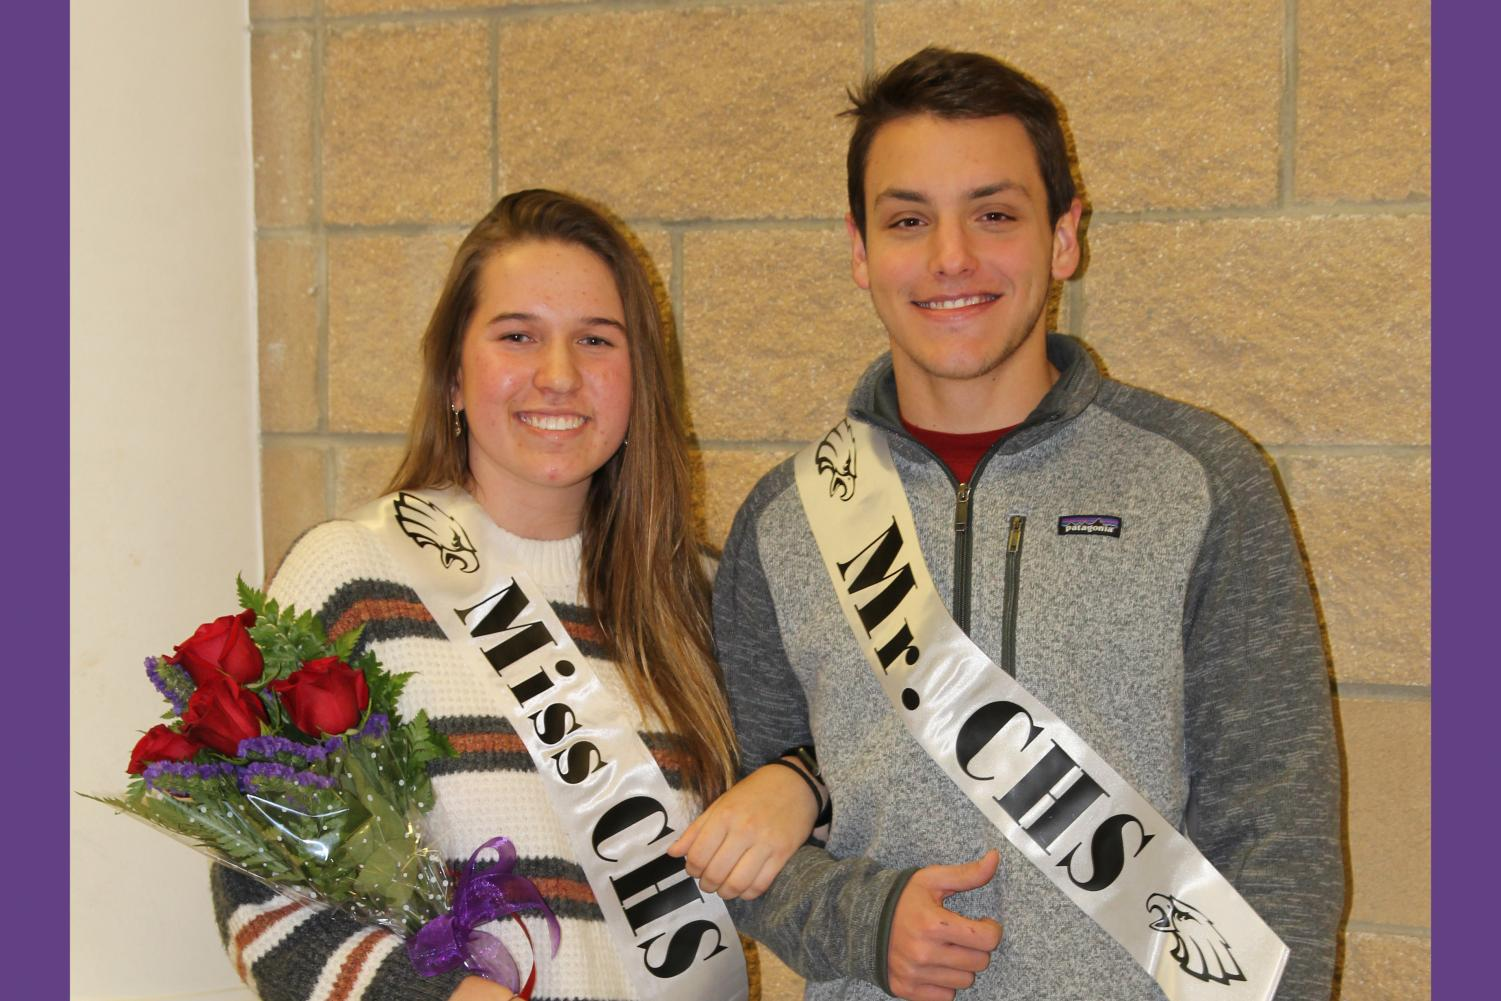 Seniors Aidan Hildinger and Ally McBroom were named Mr. and Miss CHS Dec. 3.